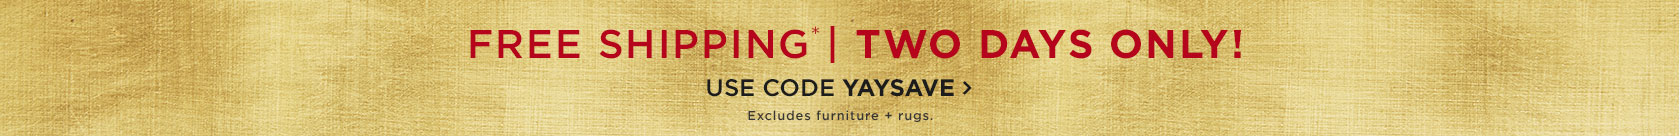 Free Shipping. Two Days Only! Use Code YAYSAVE